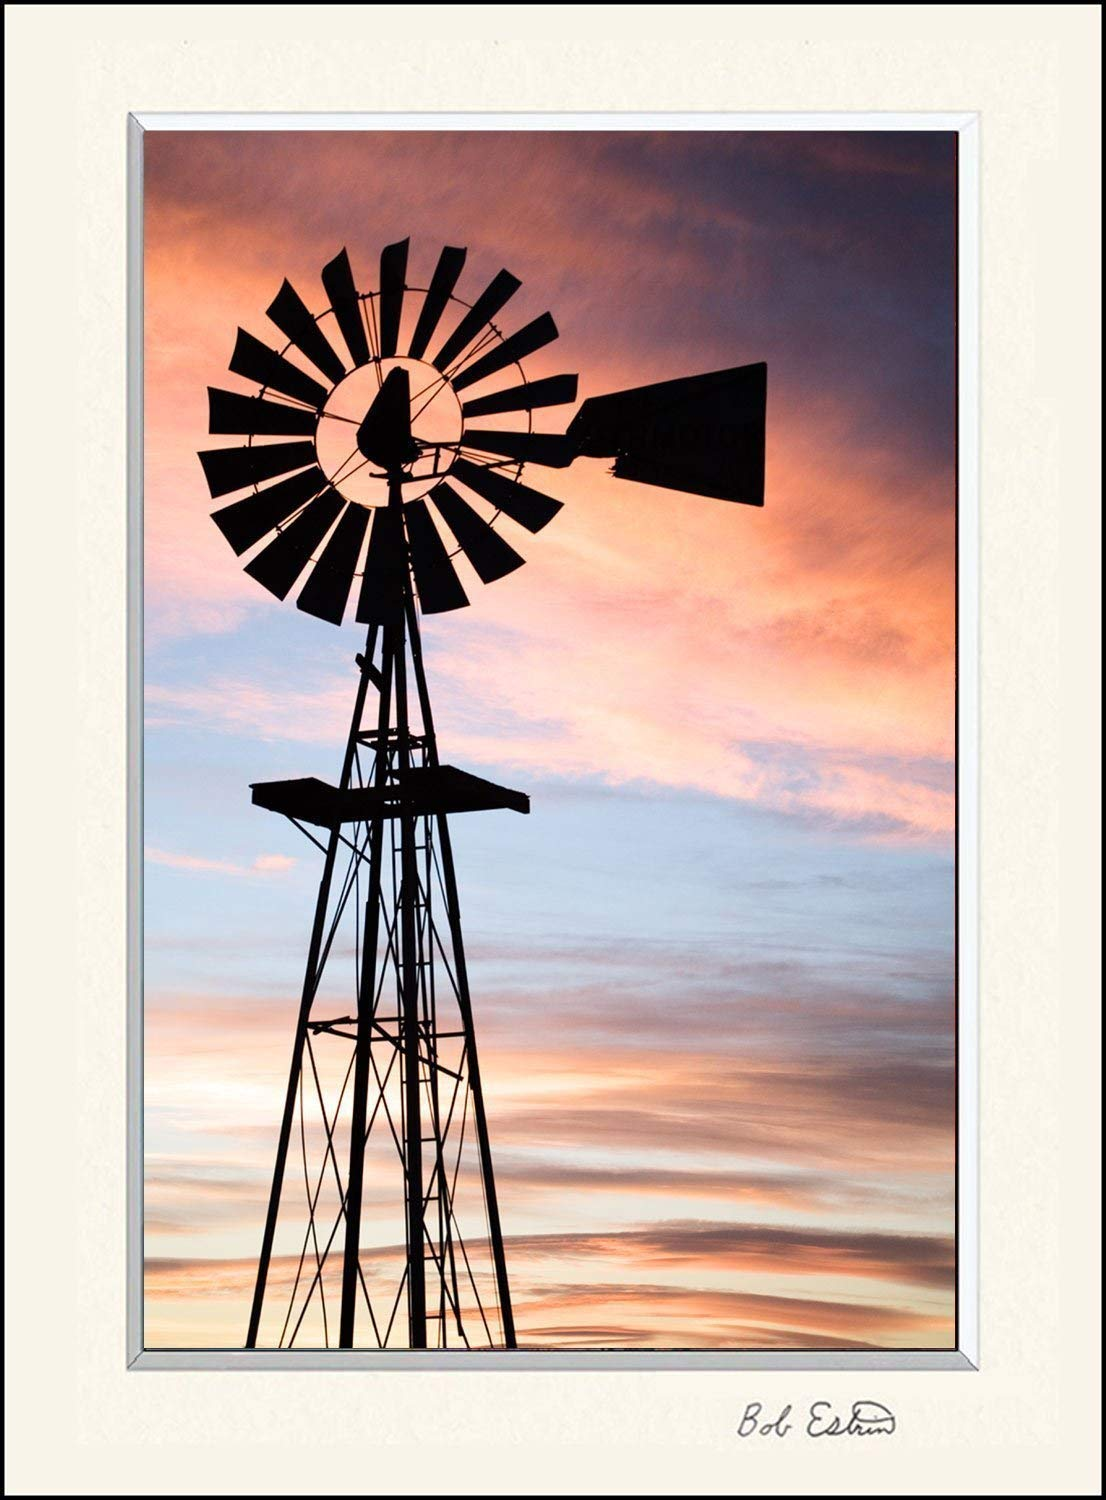 11 x 14 mat including photograph of the vintage rustic farm windmill. This country ranch setting at sunset was a beautiful scene.